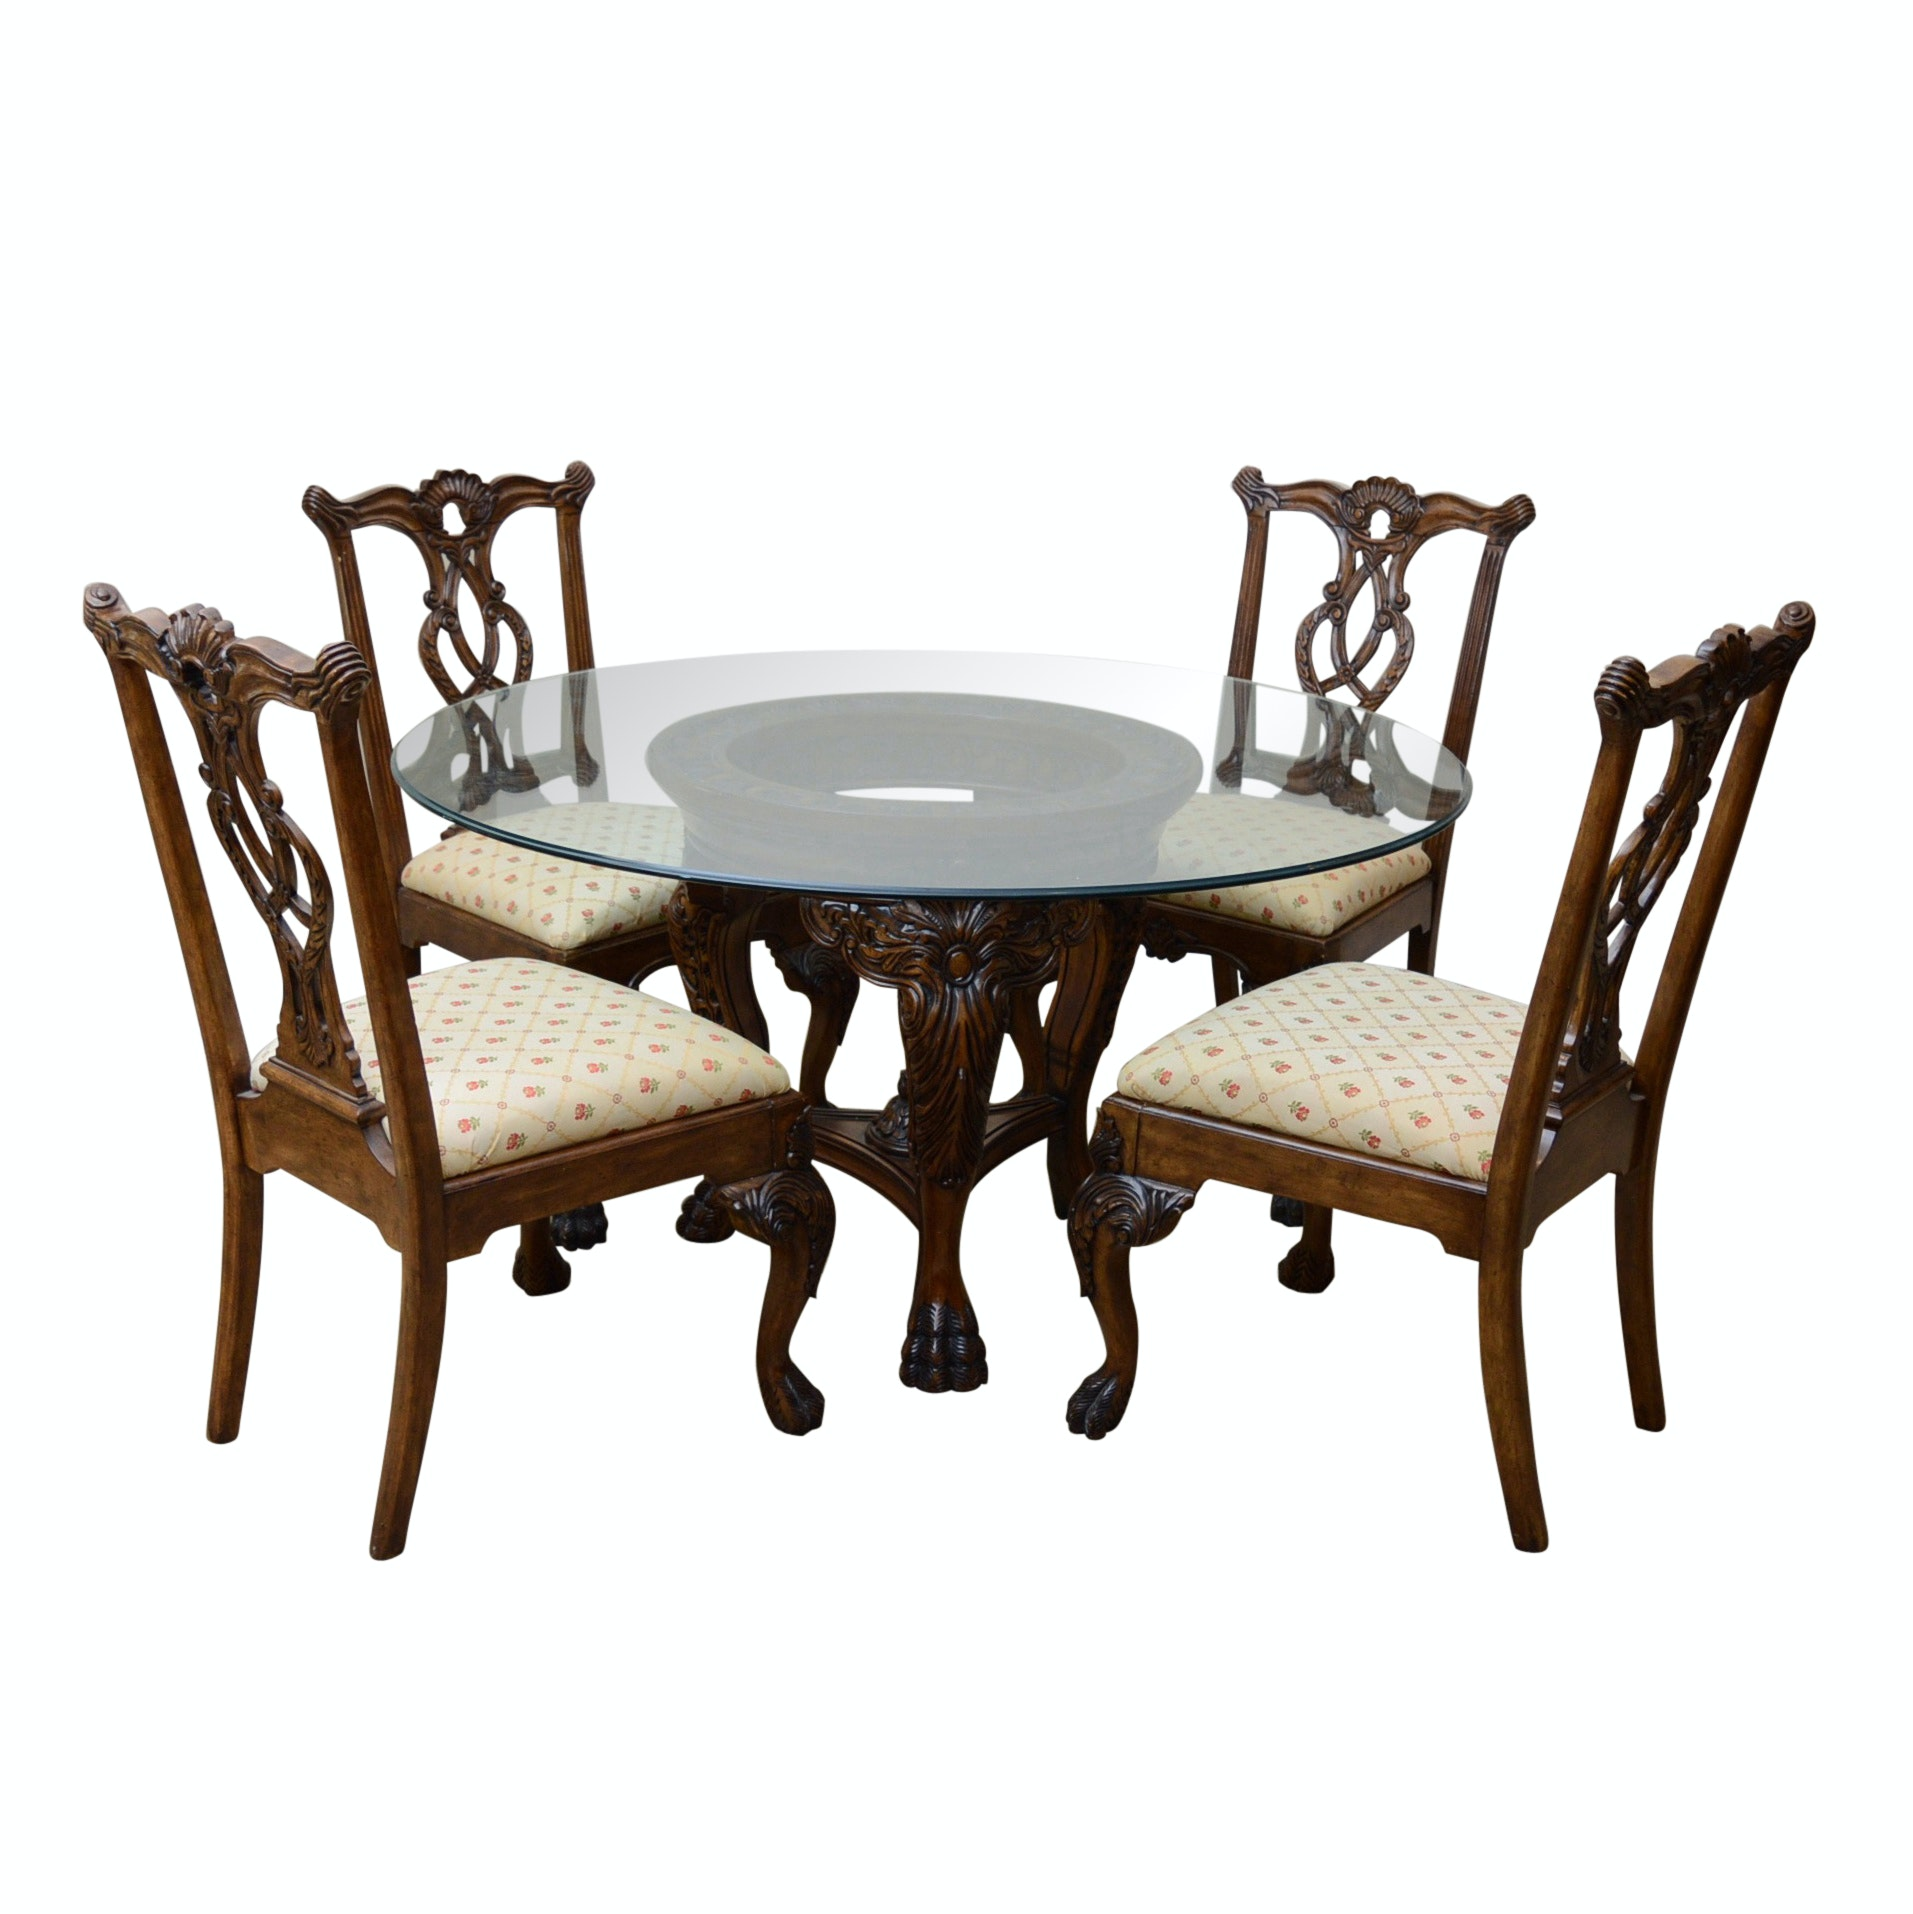 Federal Style Circular Glass Top Dining Table with Four Chairs, 20th Century